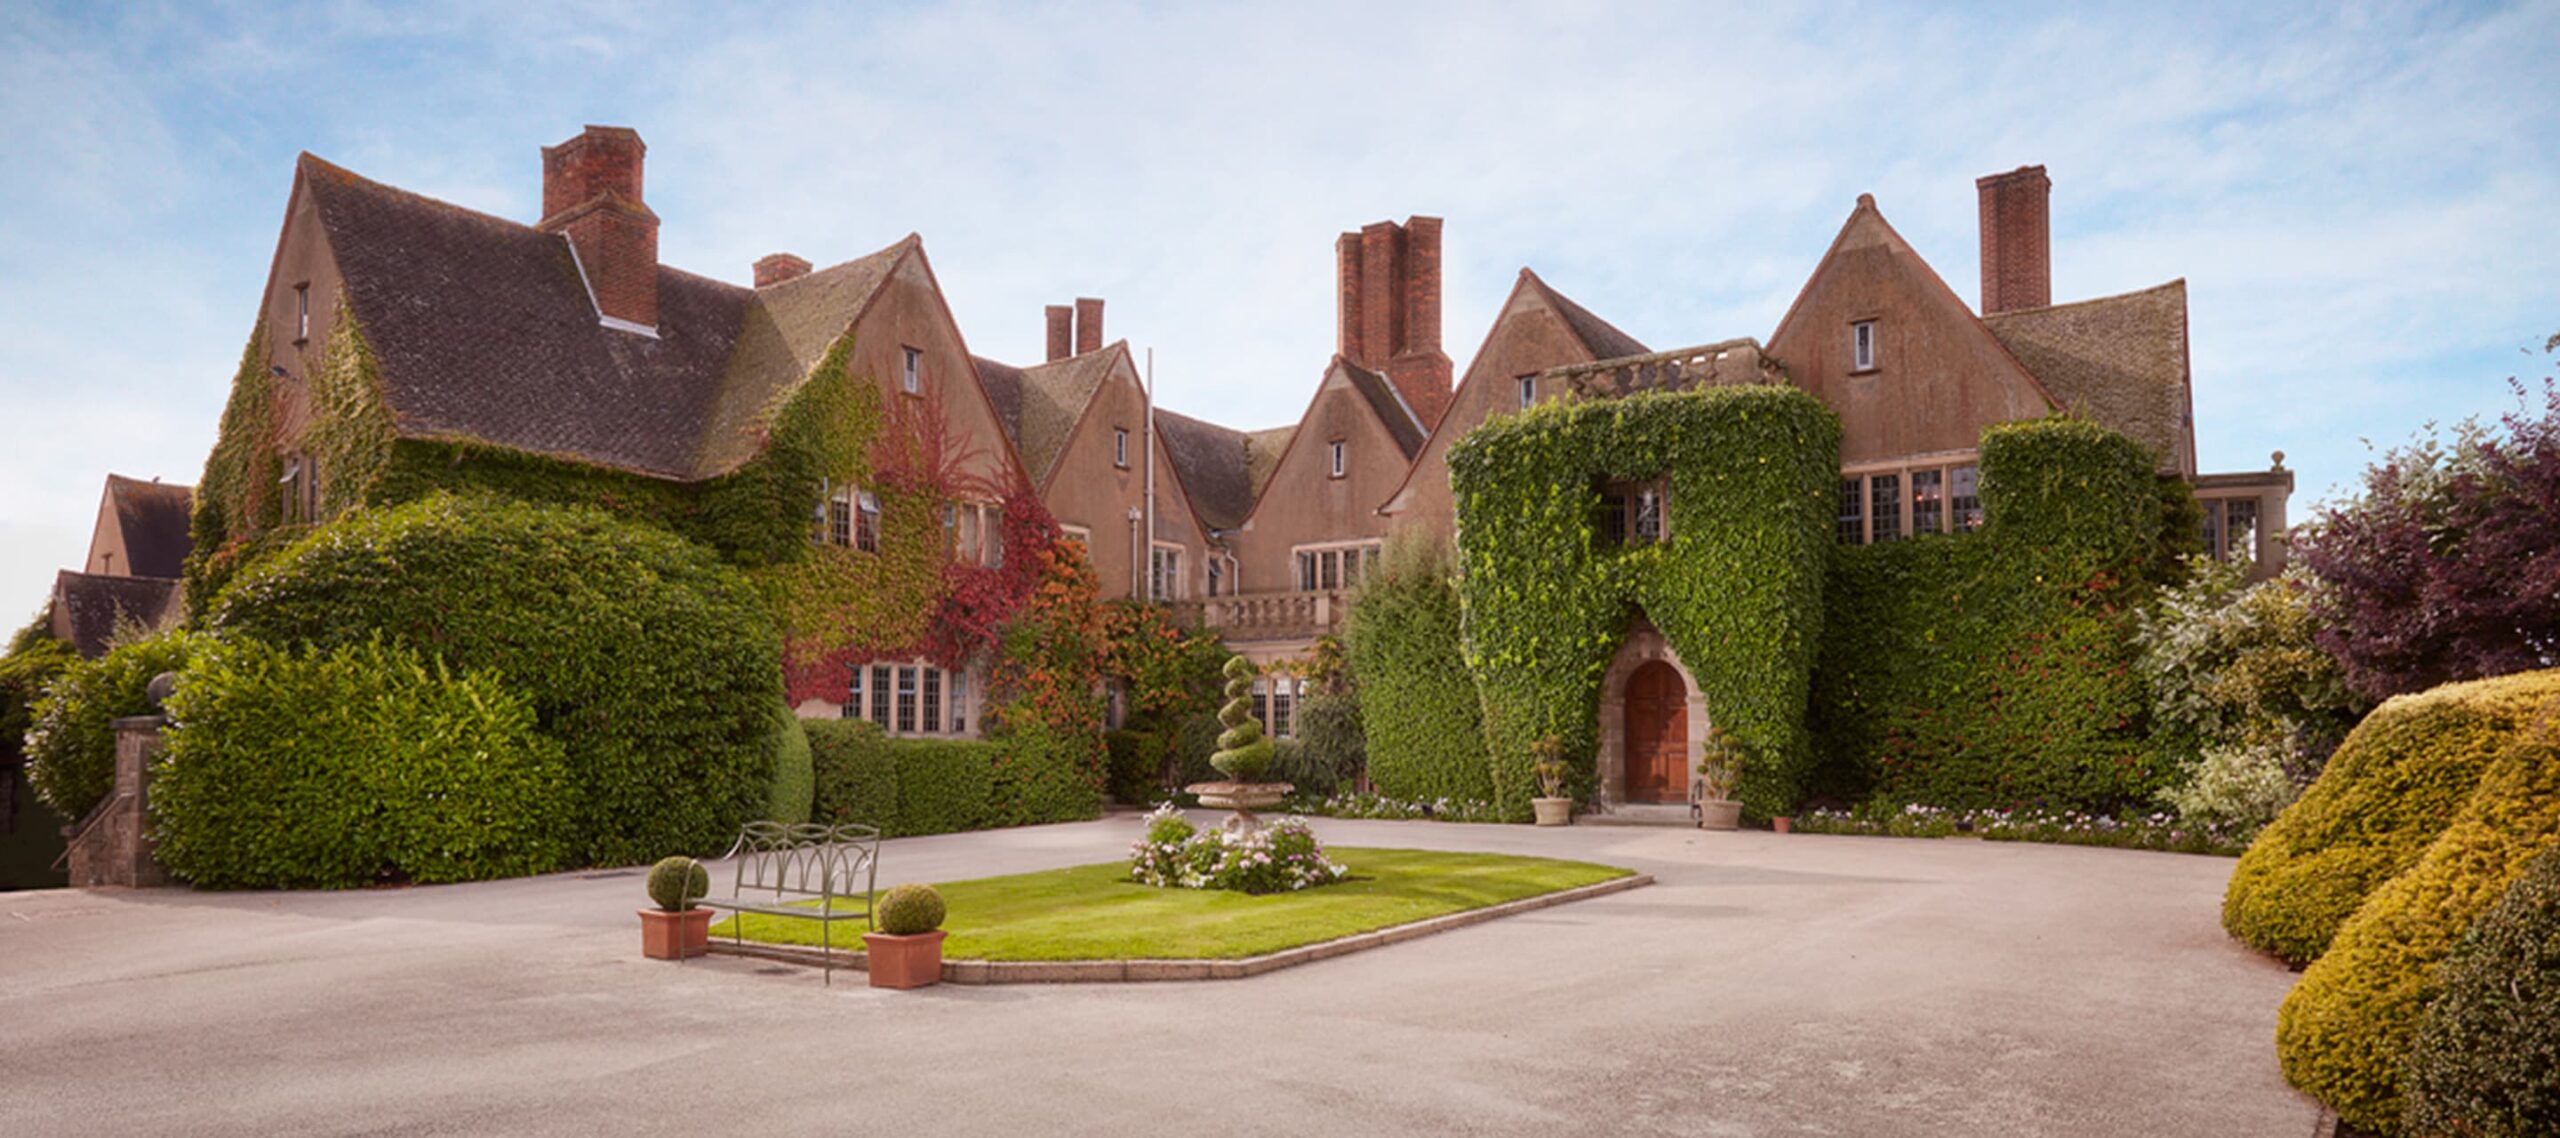 press-mallory-court-country-house-hotel-spa-warwickshire-appoints-new-general-manager-nick-hanson-1